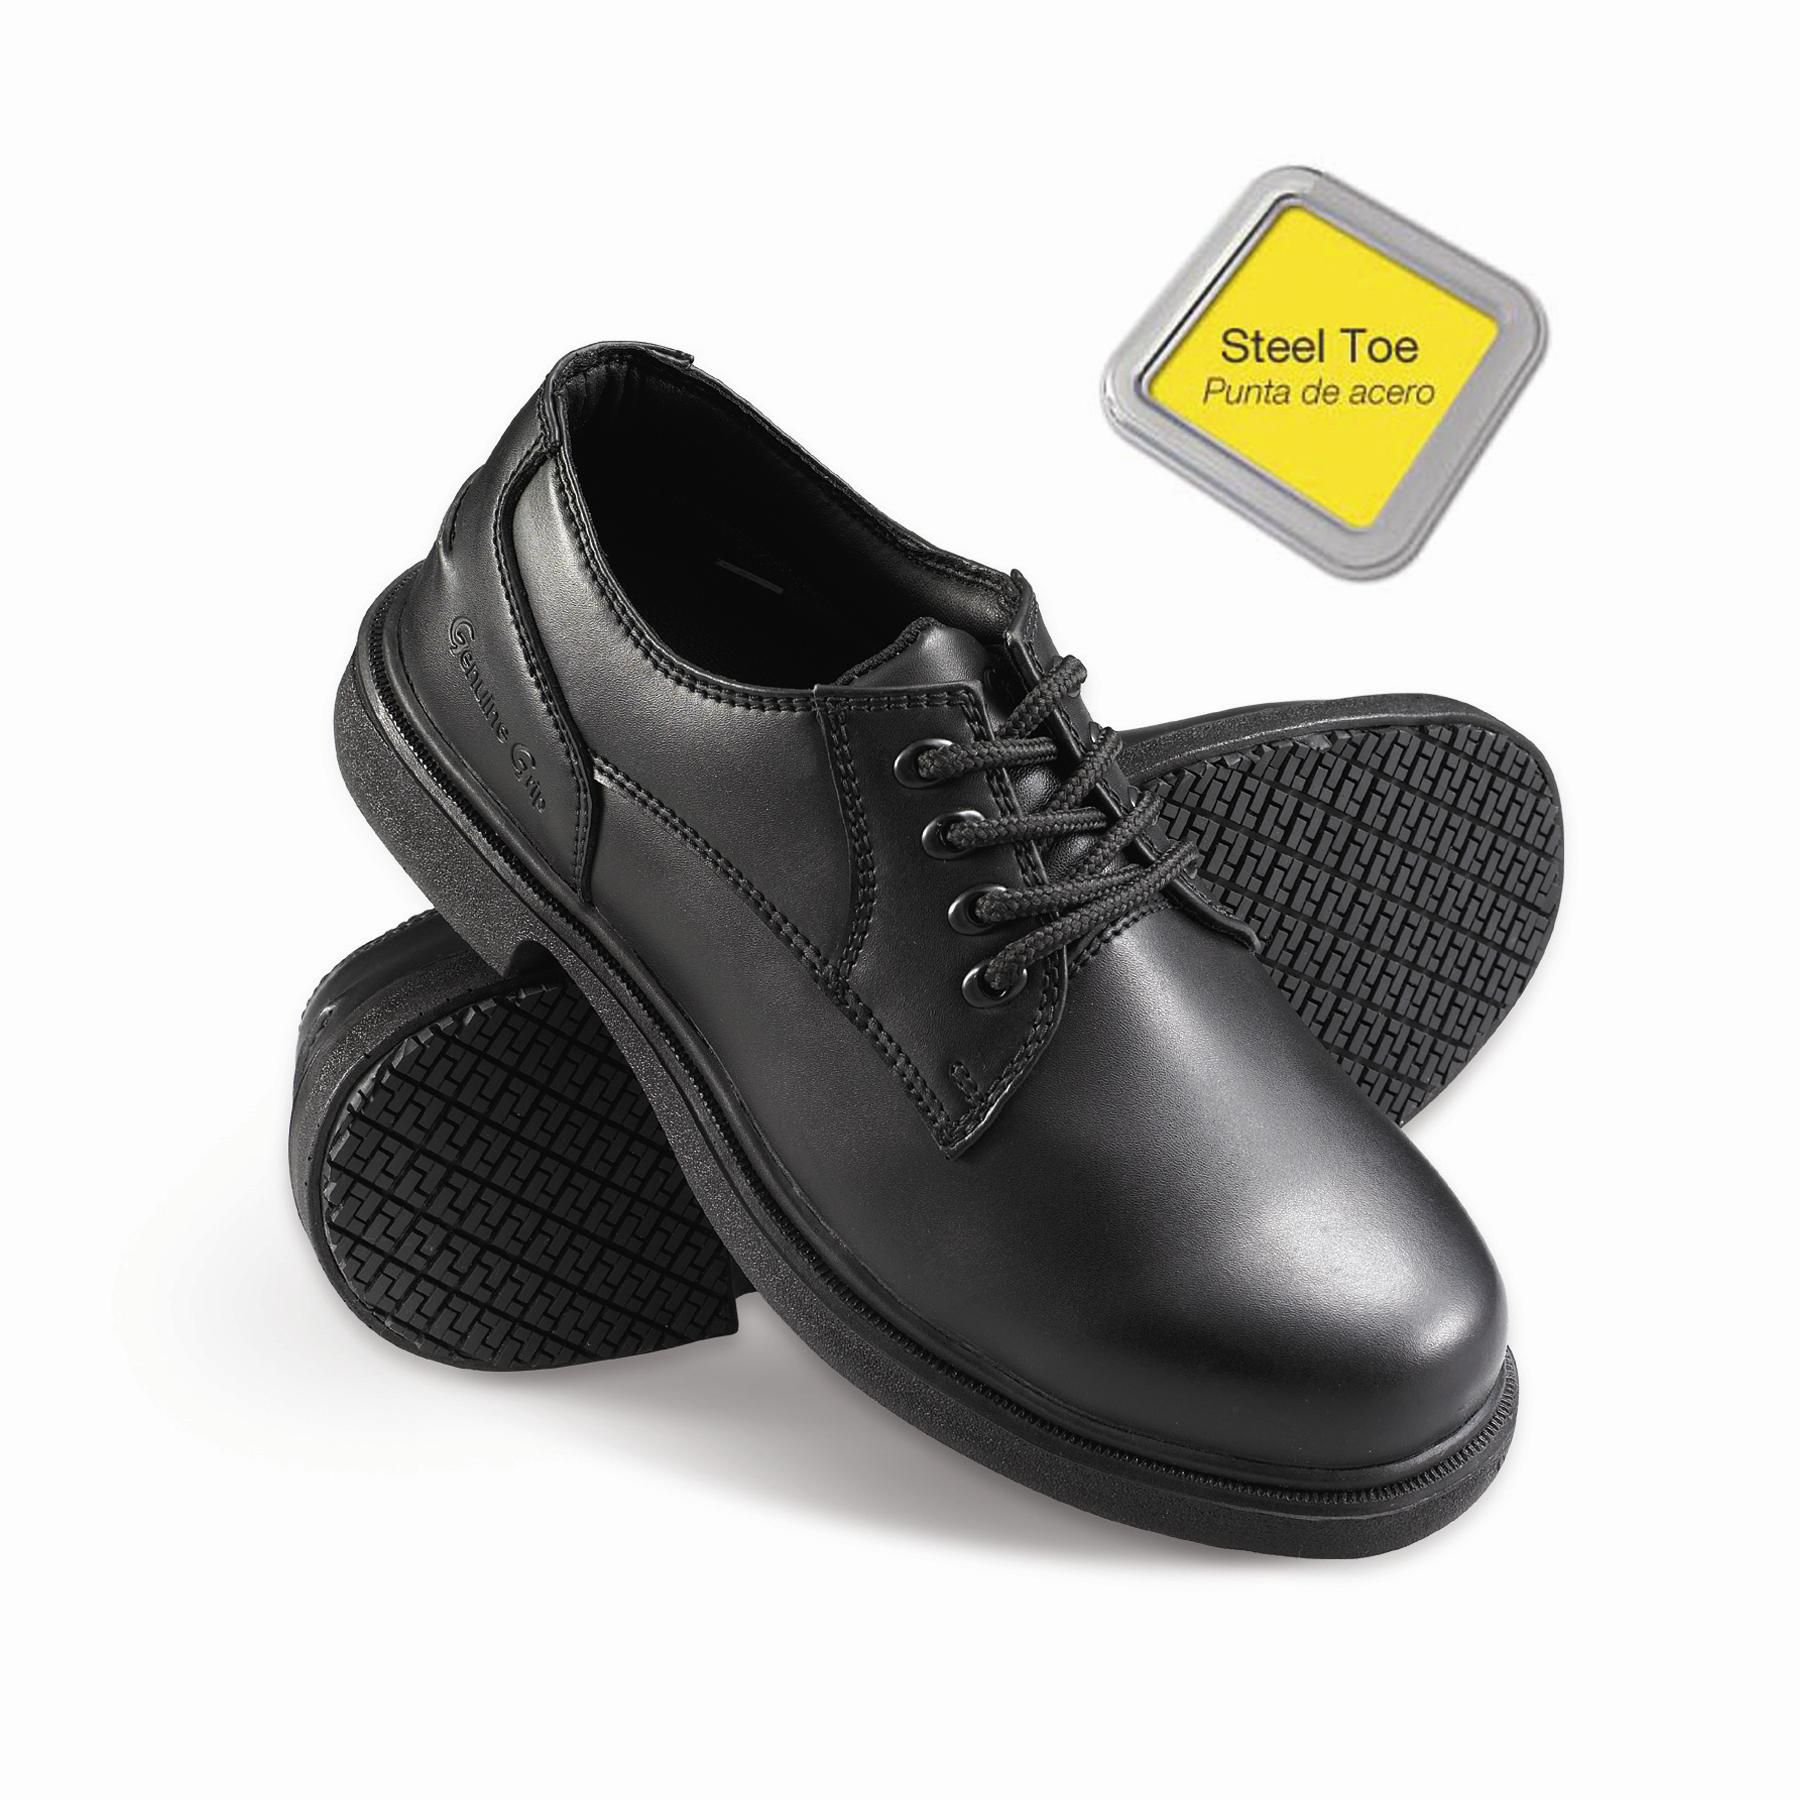 Women's Slip-Resistant Steel Toe Oxfords